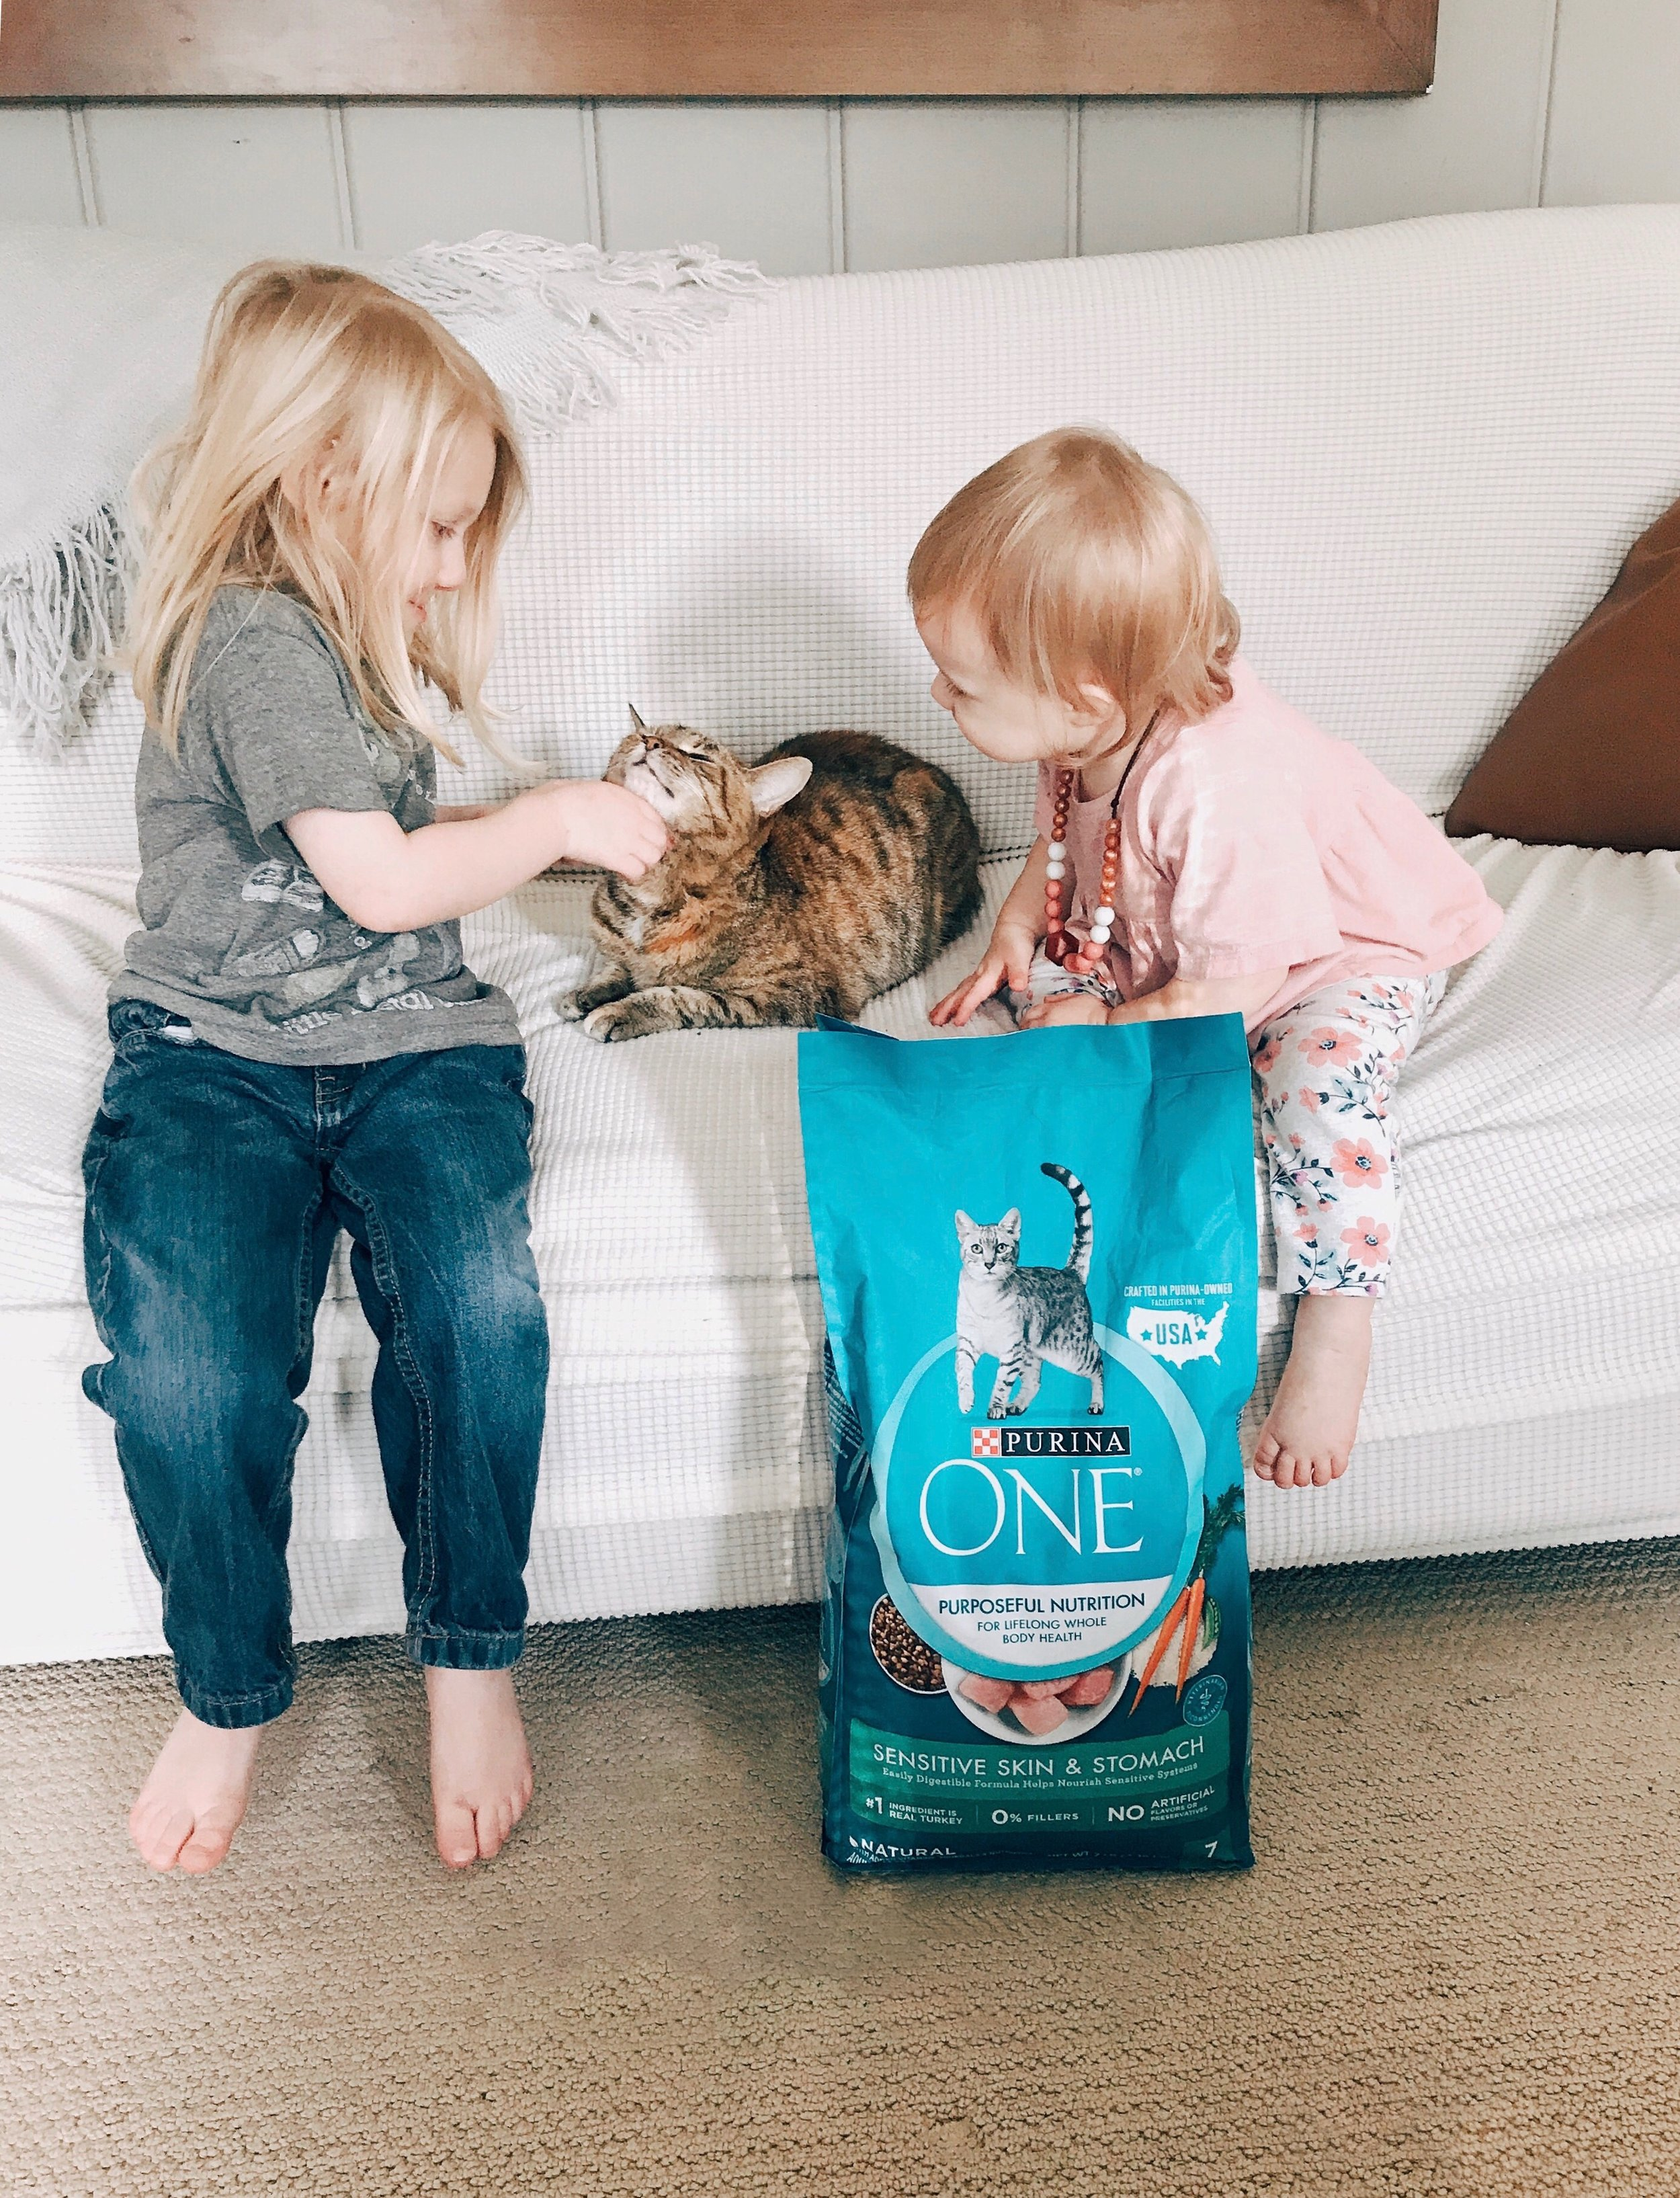 Start your pet's healthier journey by joining me in the 28-day challenge!